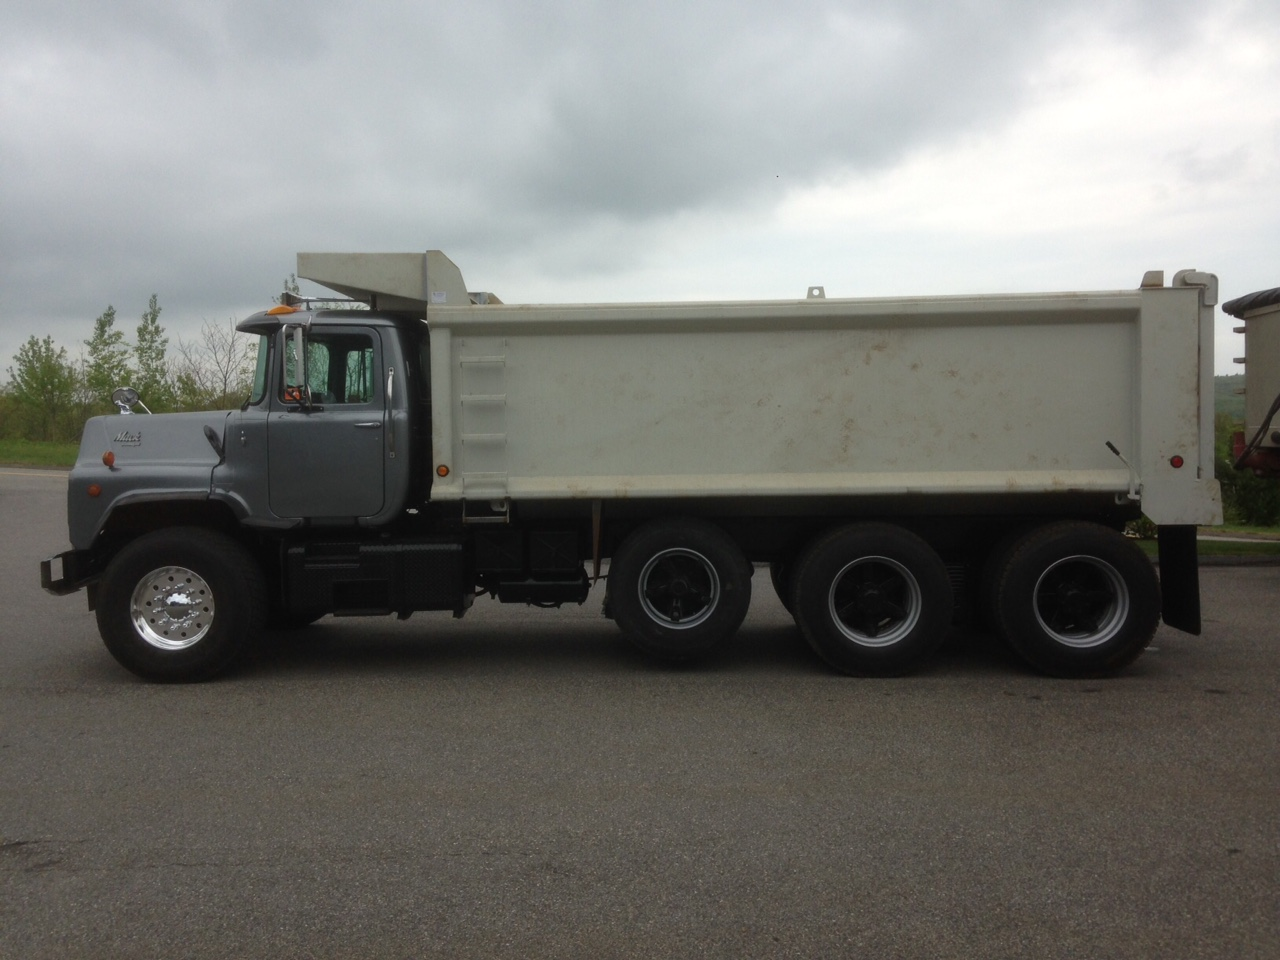 95 mack dm 688s project-img_6183.jpg